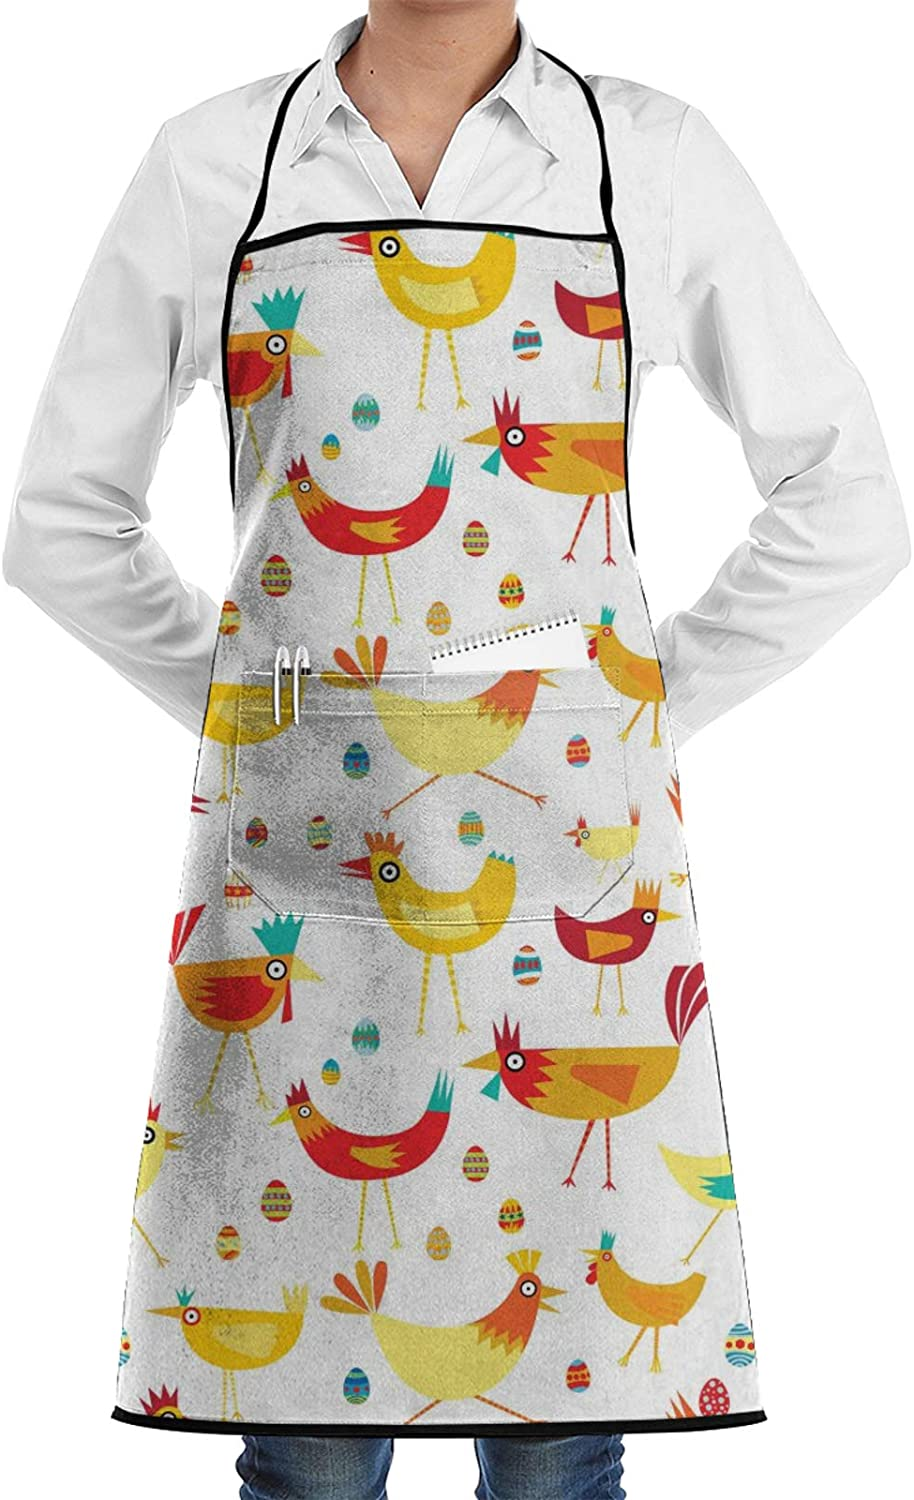 QSMX Bib Aprons Water Resistant Adjustable Kitchen Cooking Pocket Aprons Durable Chef Apron for Grilling Baking Gift for Halloween Christmas Colorful Chickens with Eggs